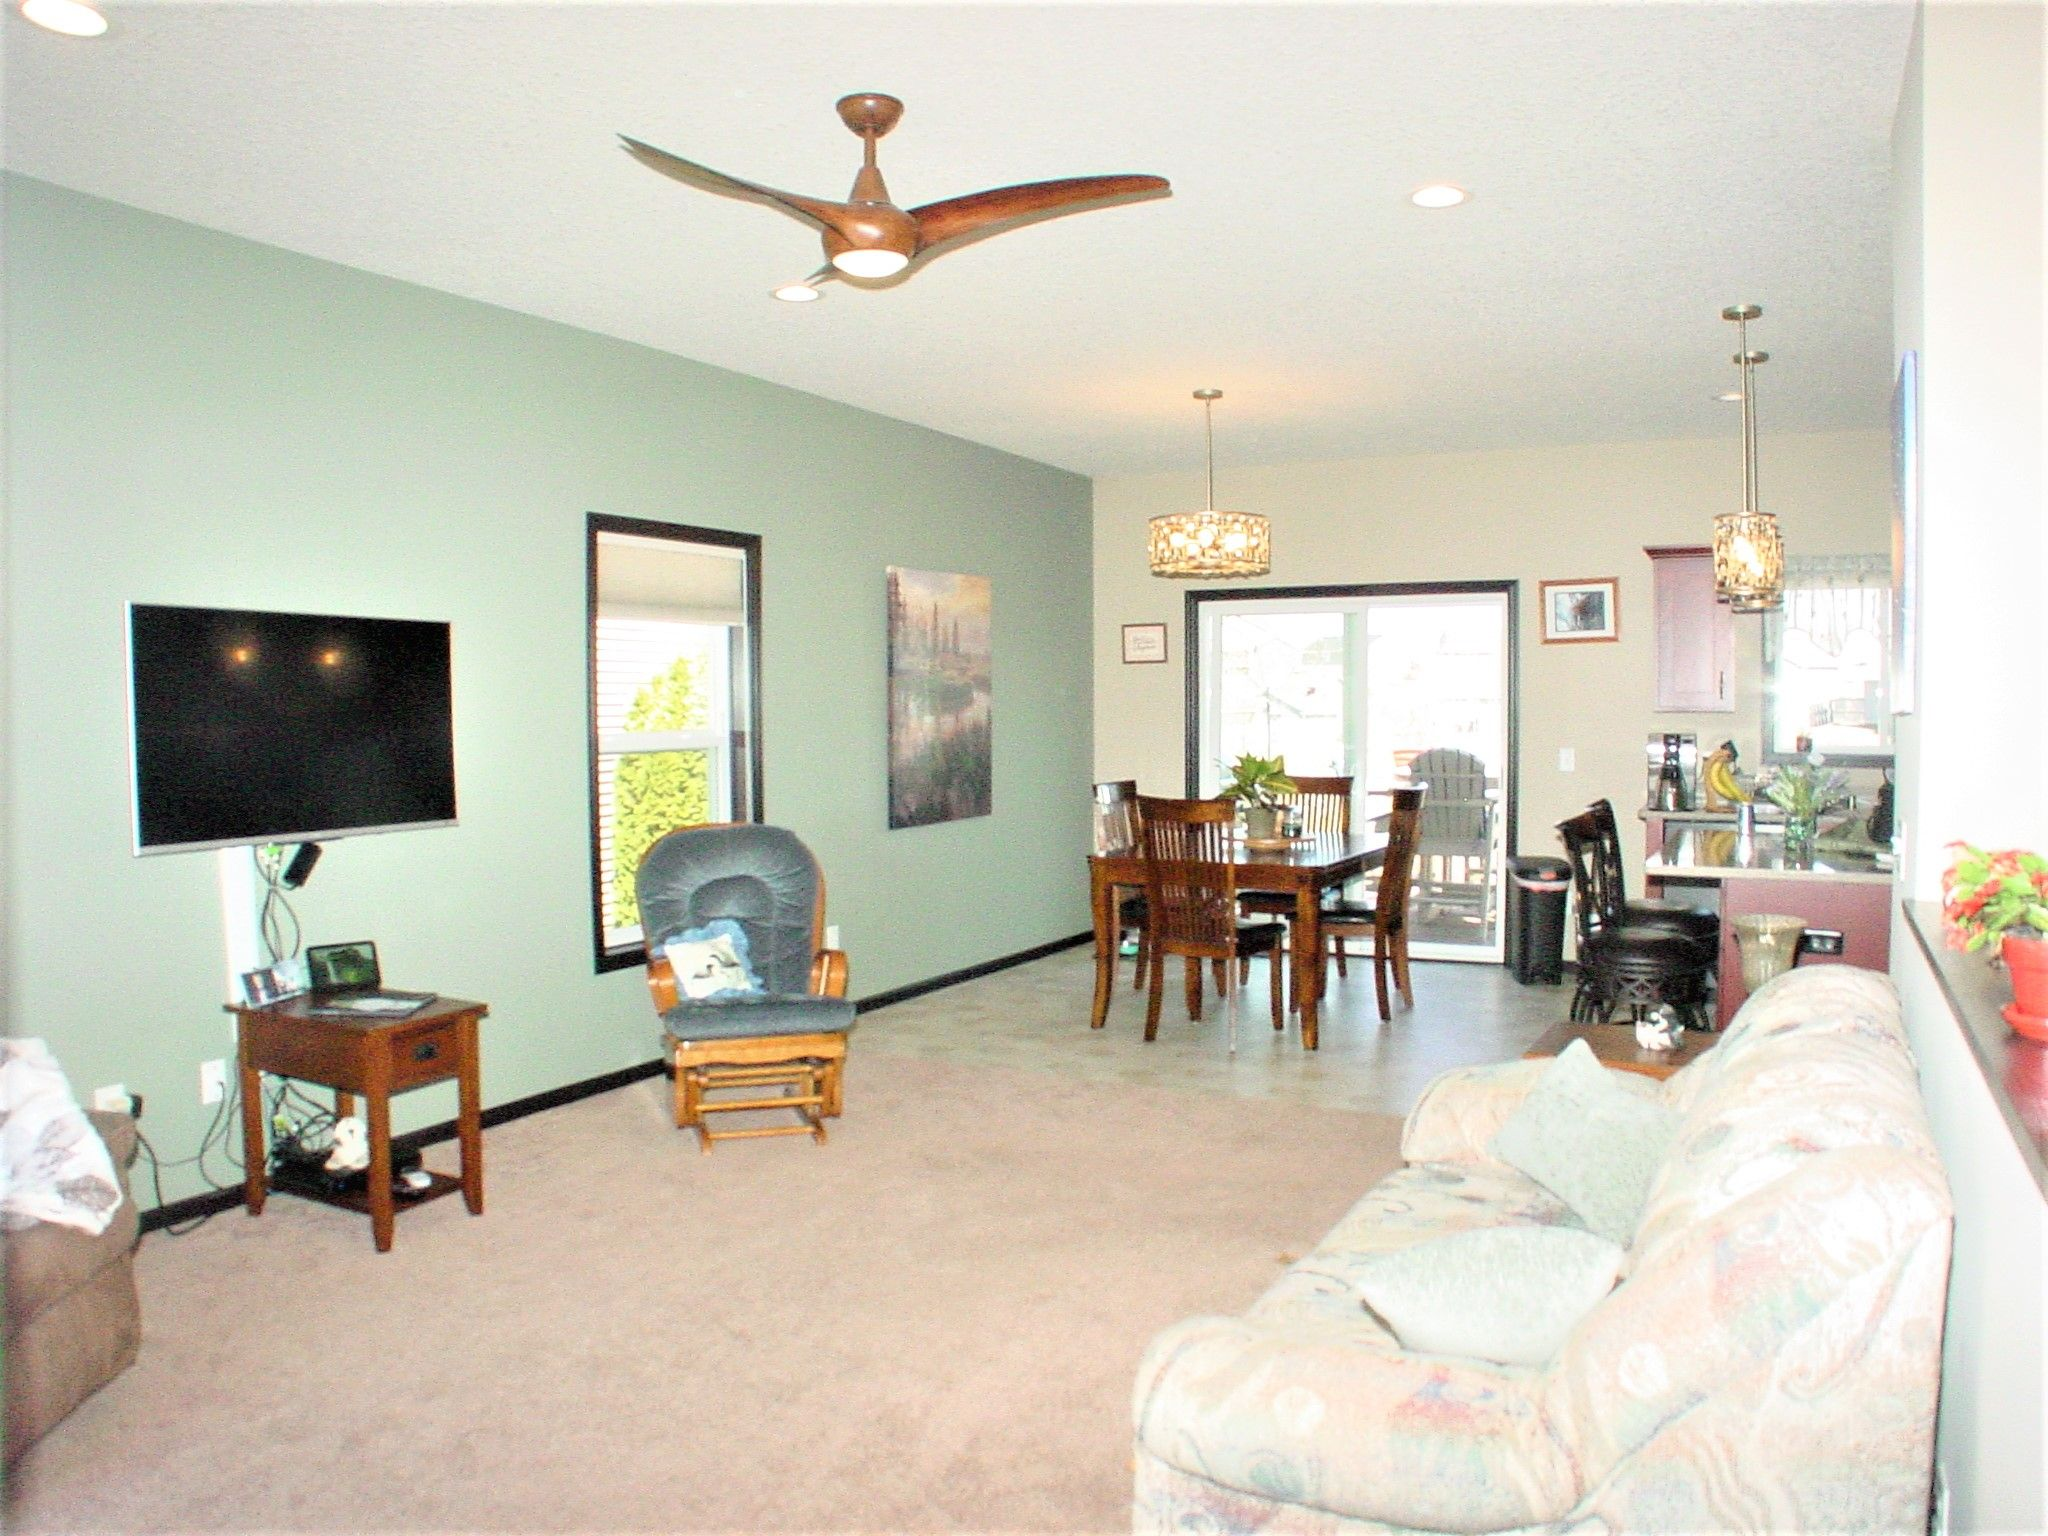 Open concept Great Room, Dining area with attractive recessed lighting and fan